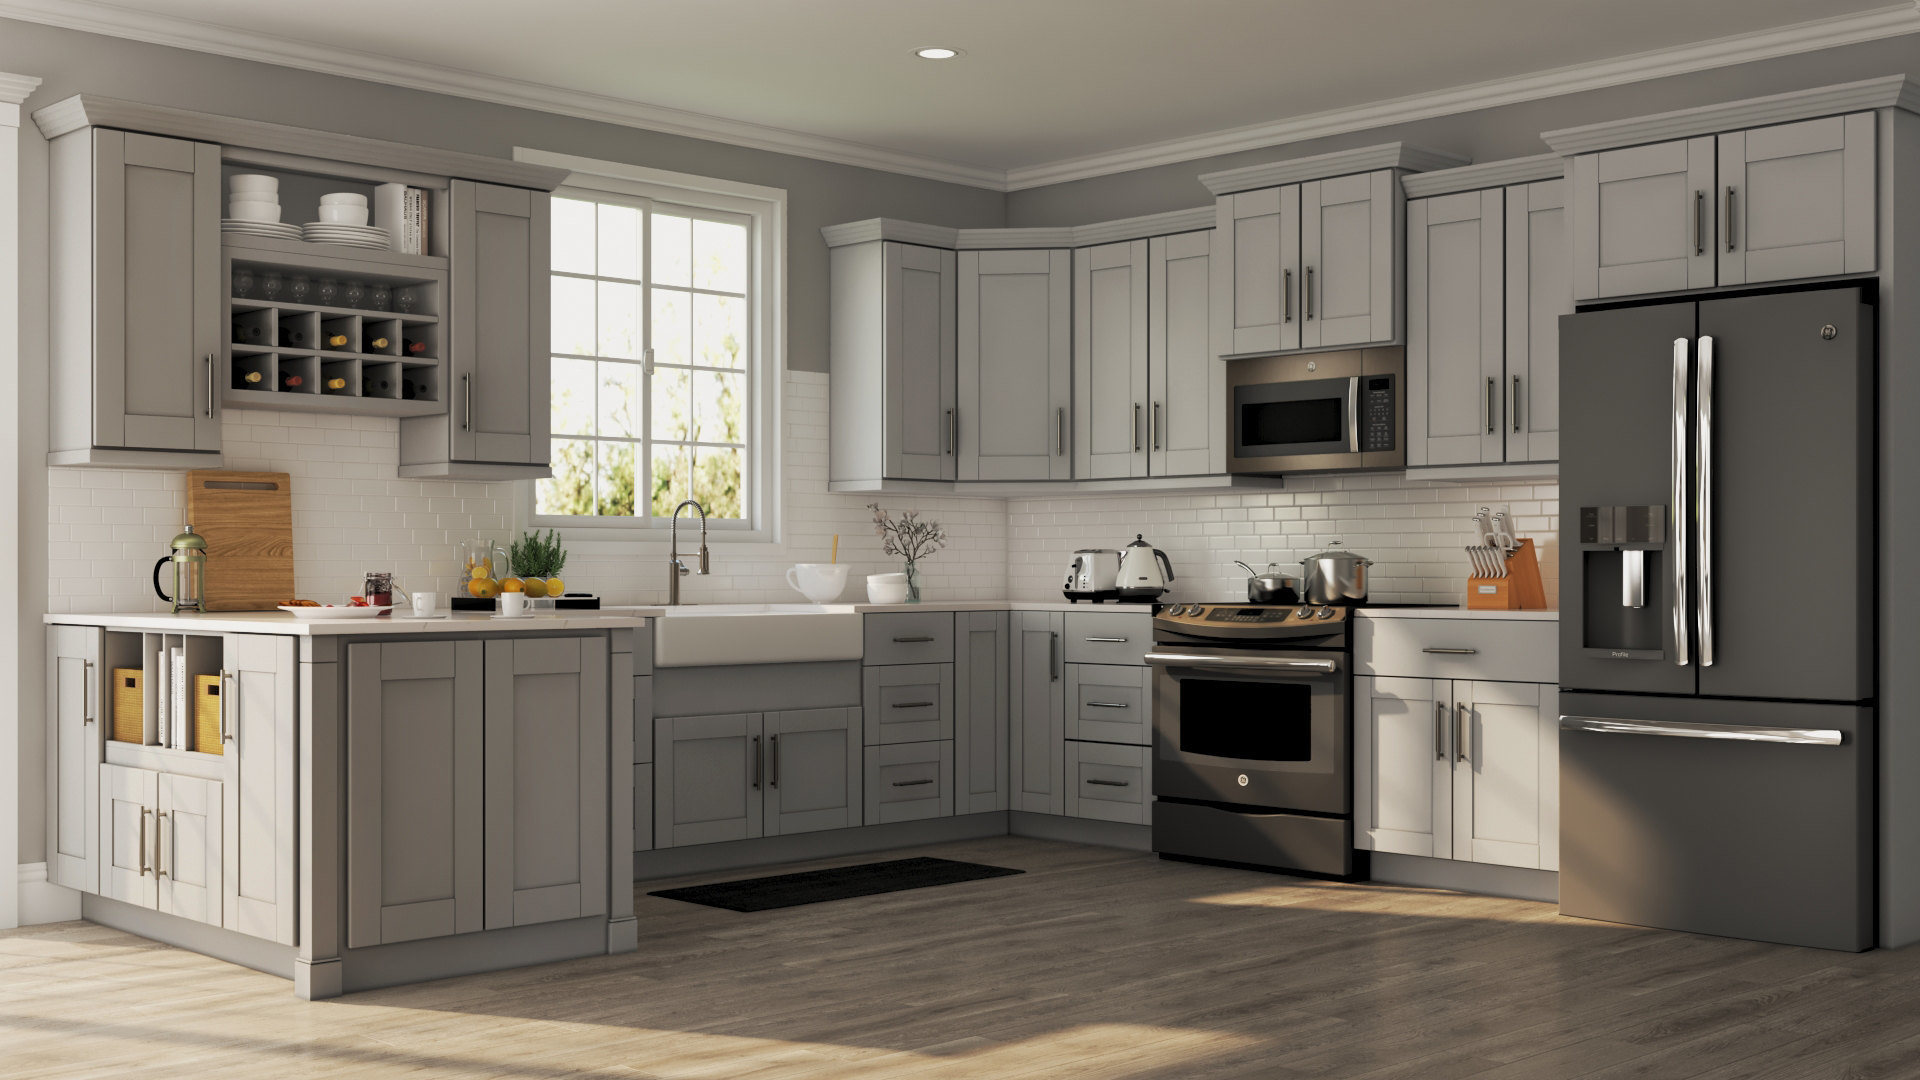 Kitchen Layout Shaker Wall Cabinets In Dove Gray Kitchen The Home Depot